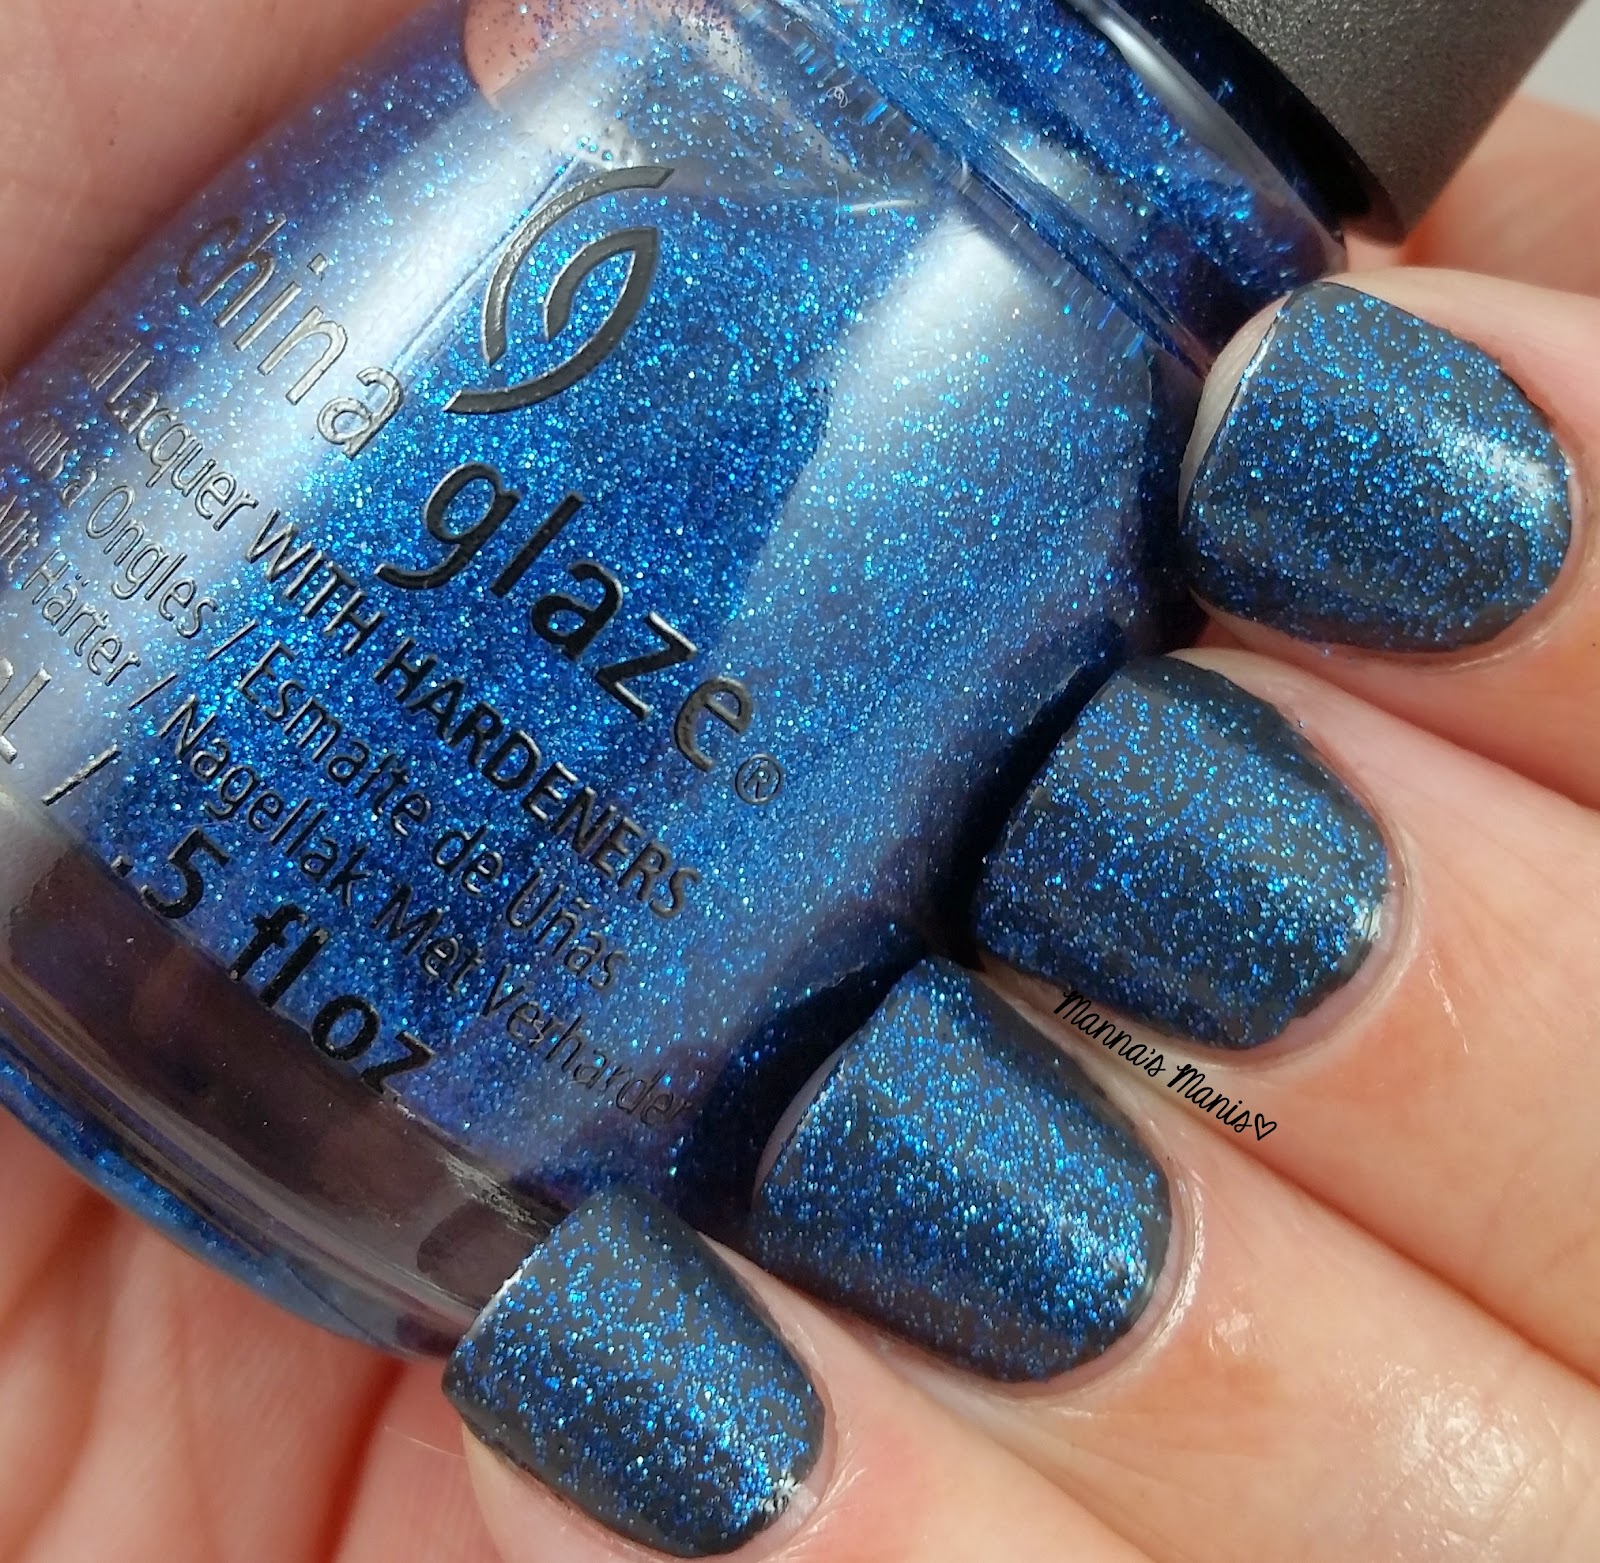 china glaze feeling twinkly, a blue glitter nail polish